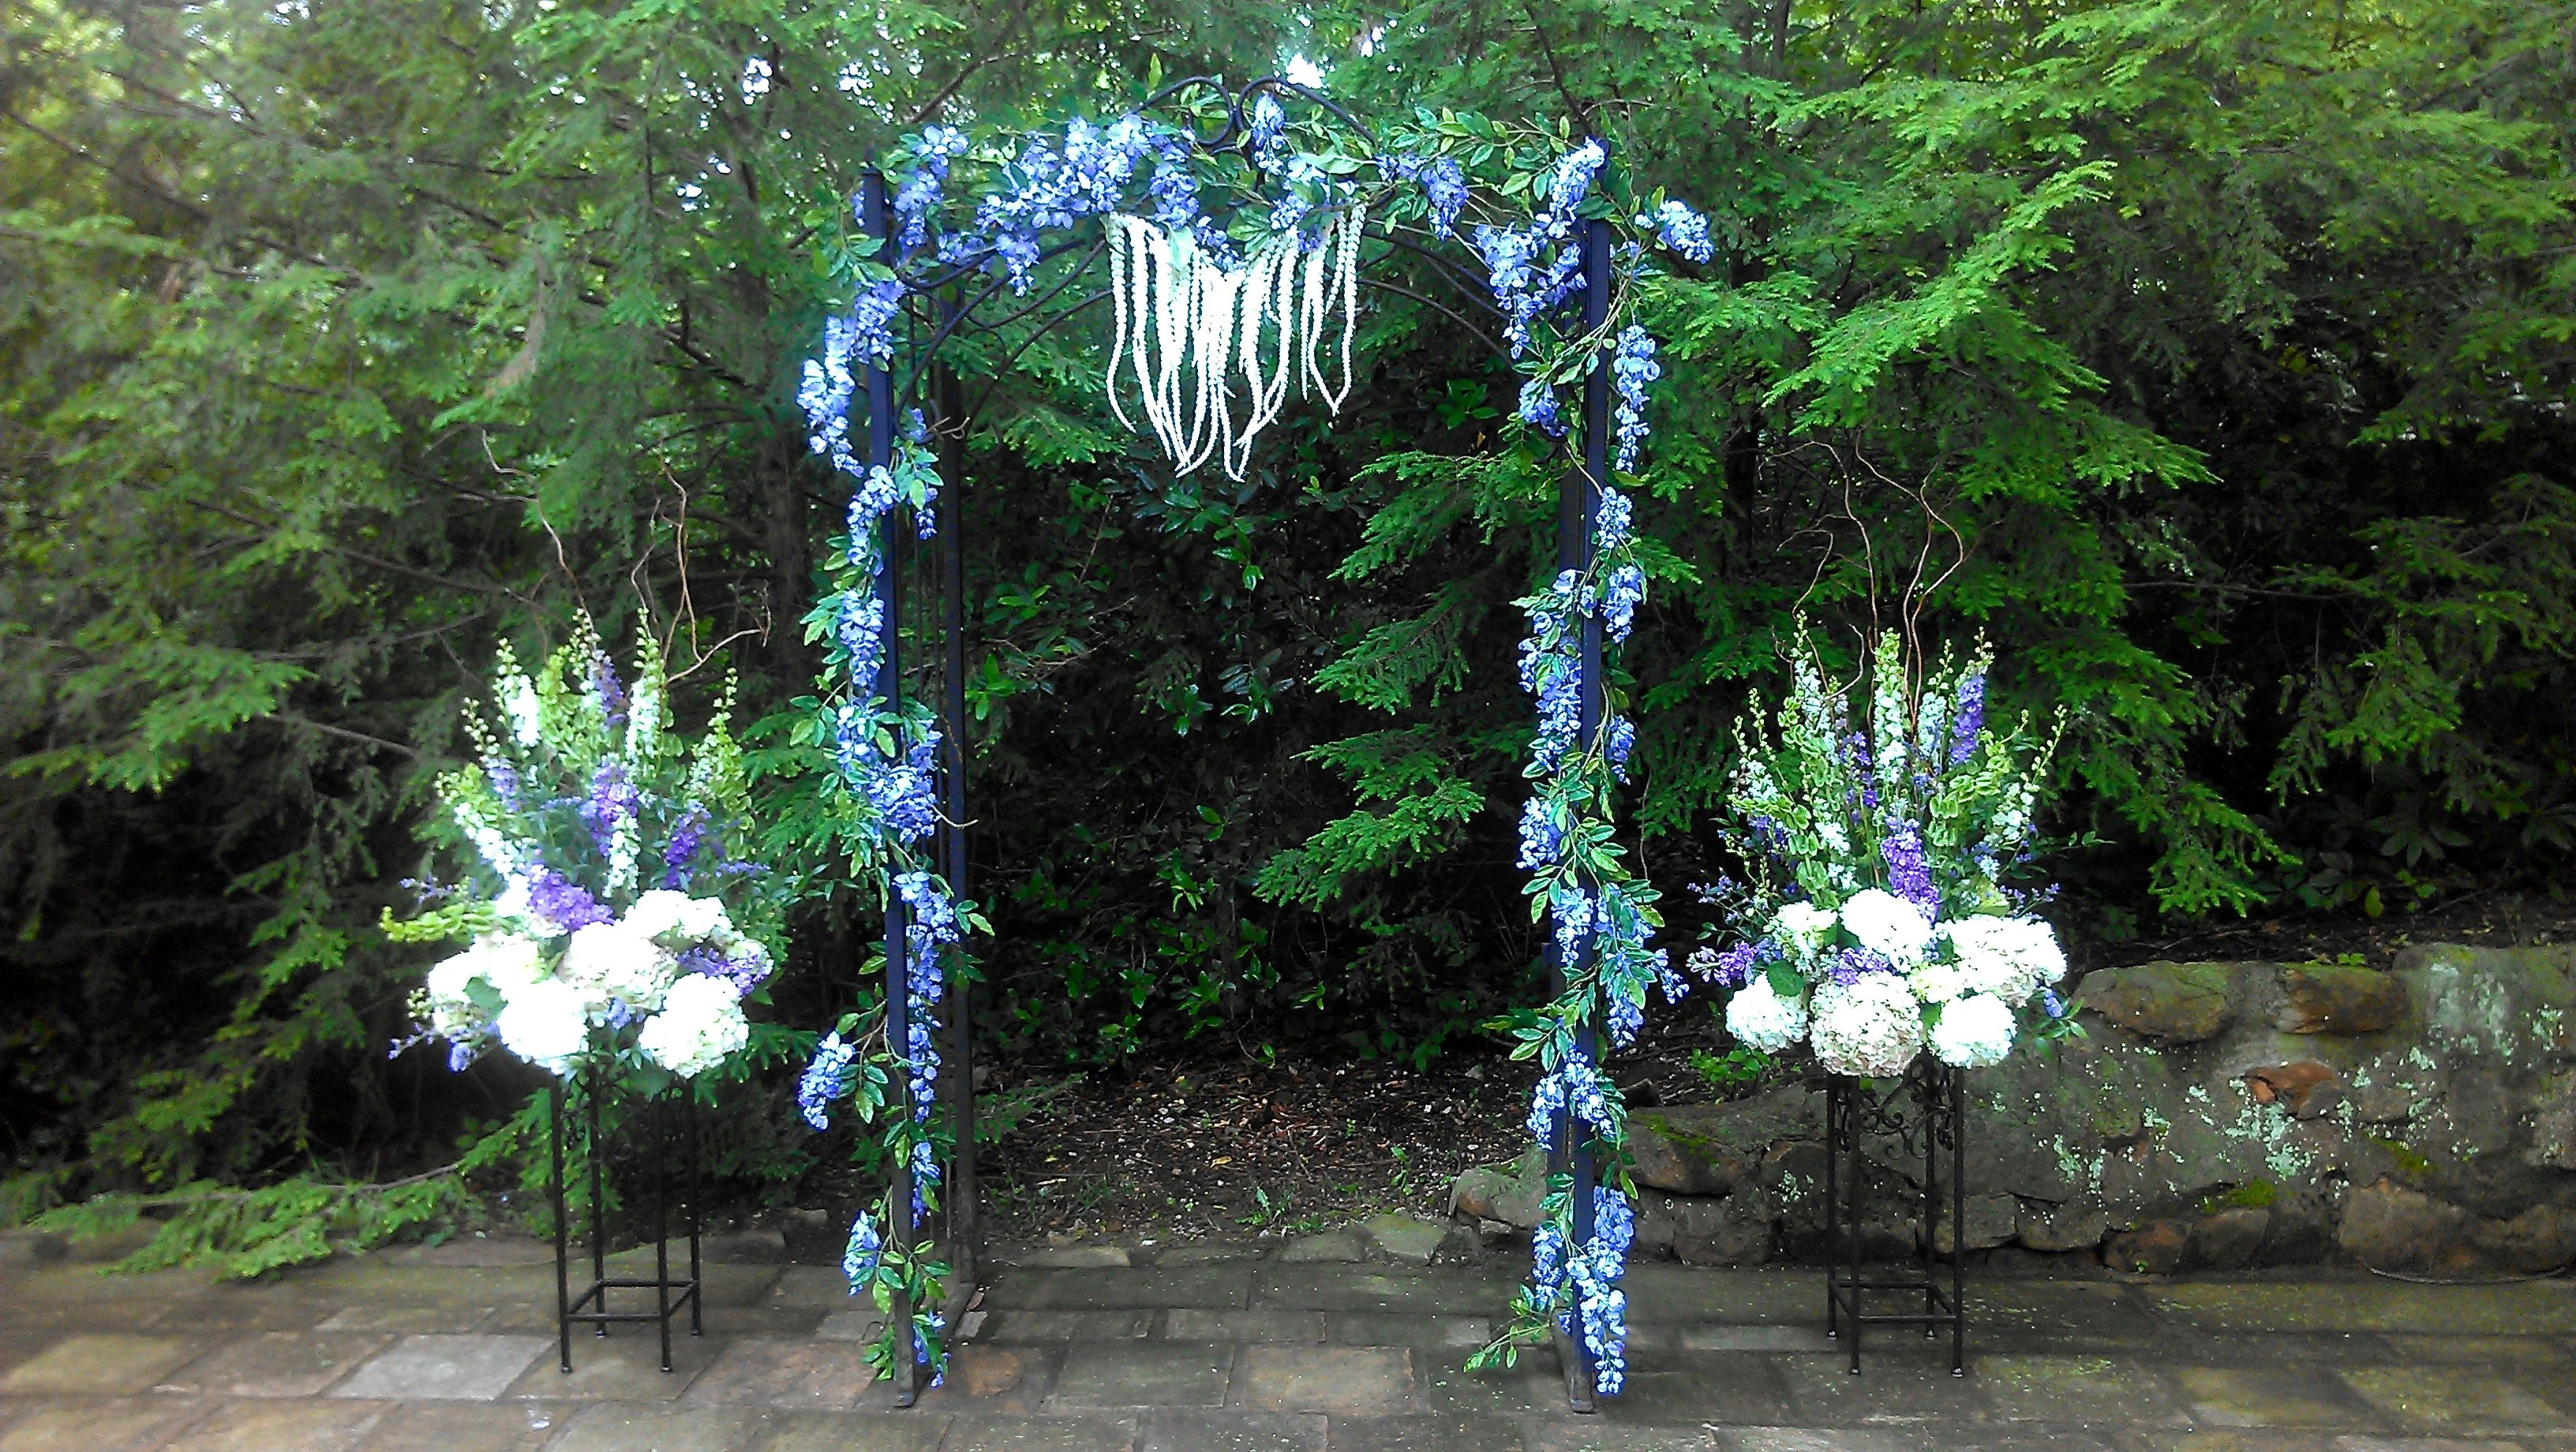 Wedding Ceremony Ideas Flower Covered Wedding Arch: Silk Wisteria Covered Arch With Fresh Floral Large